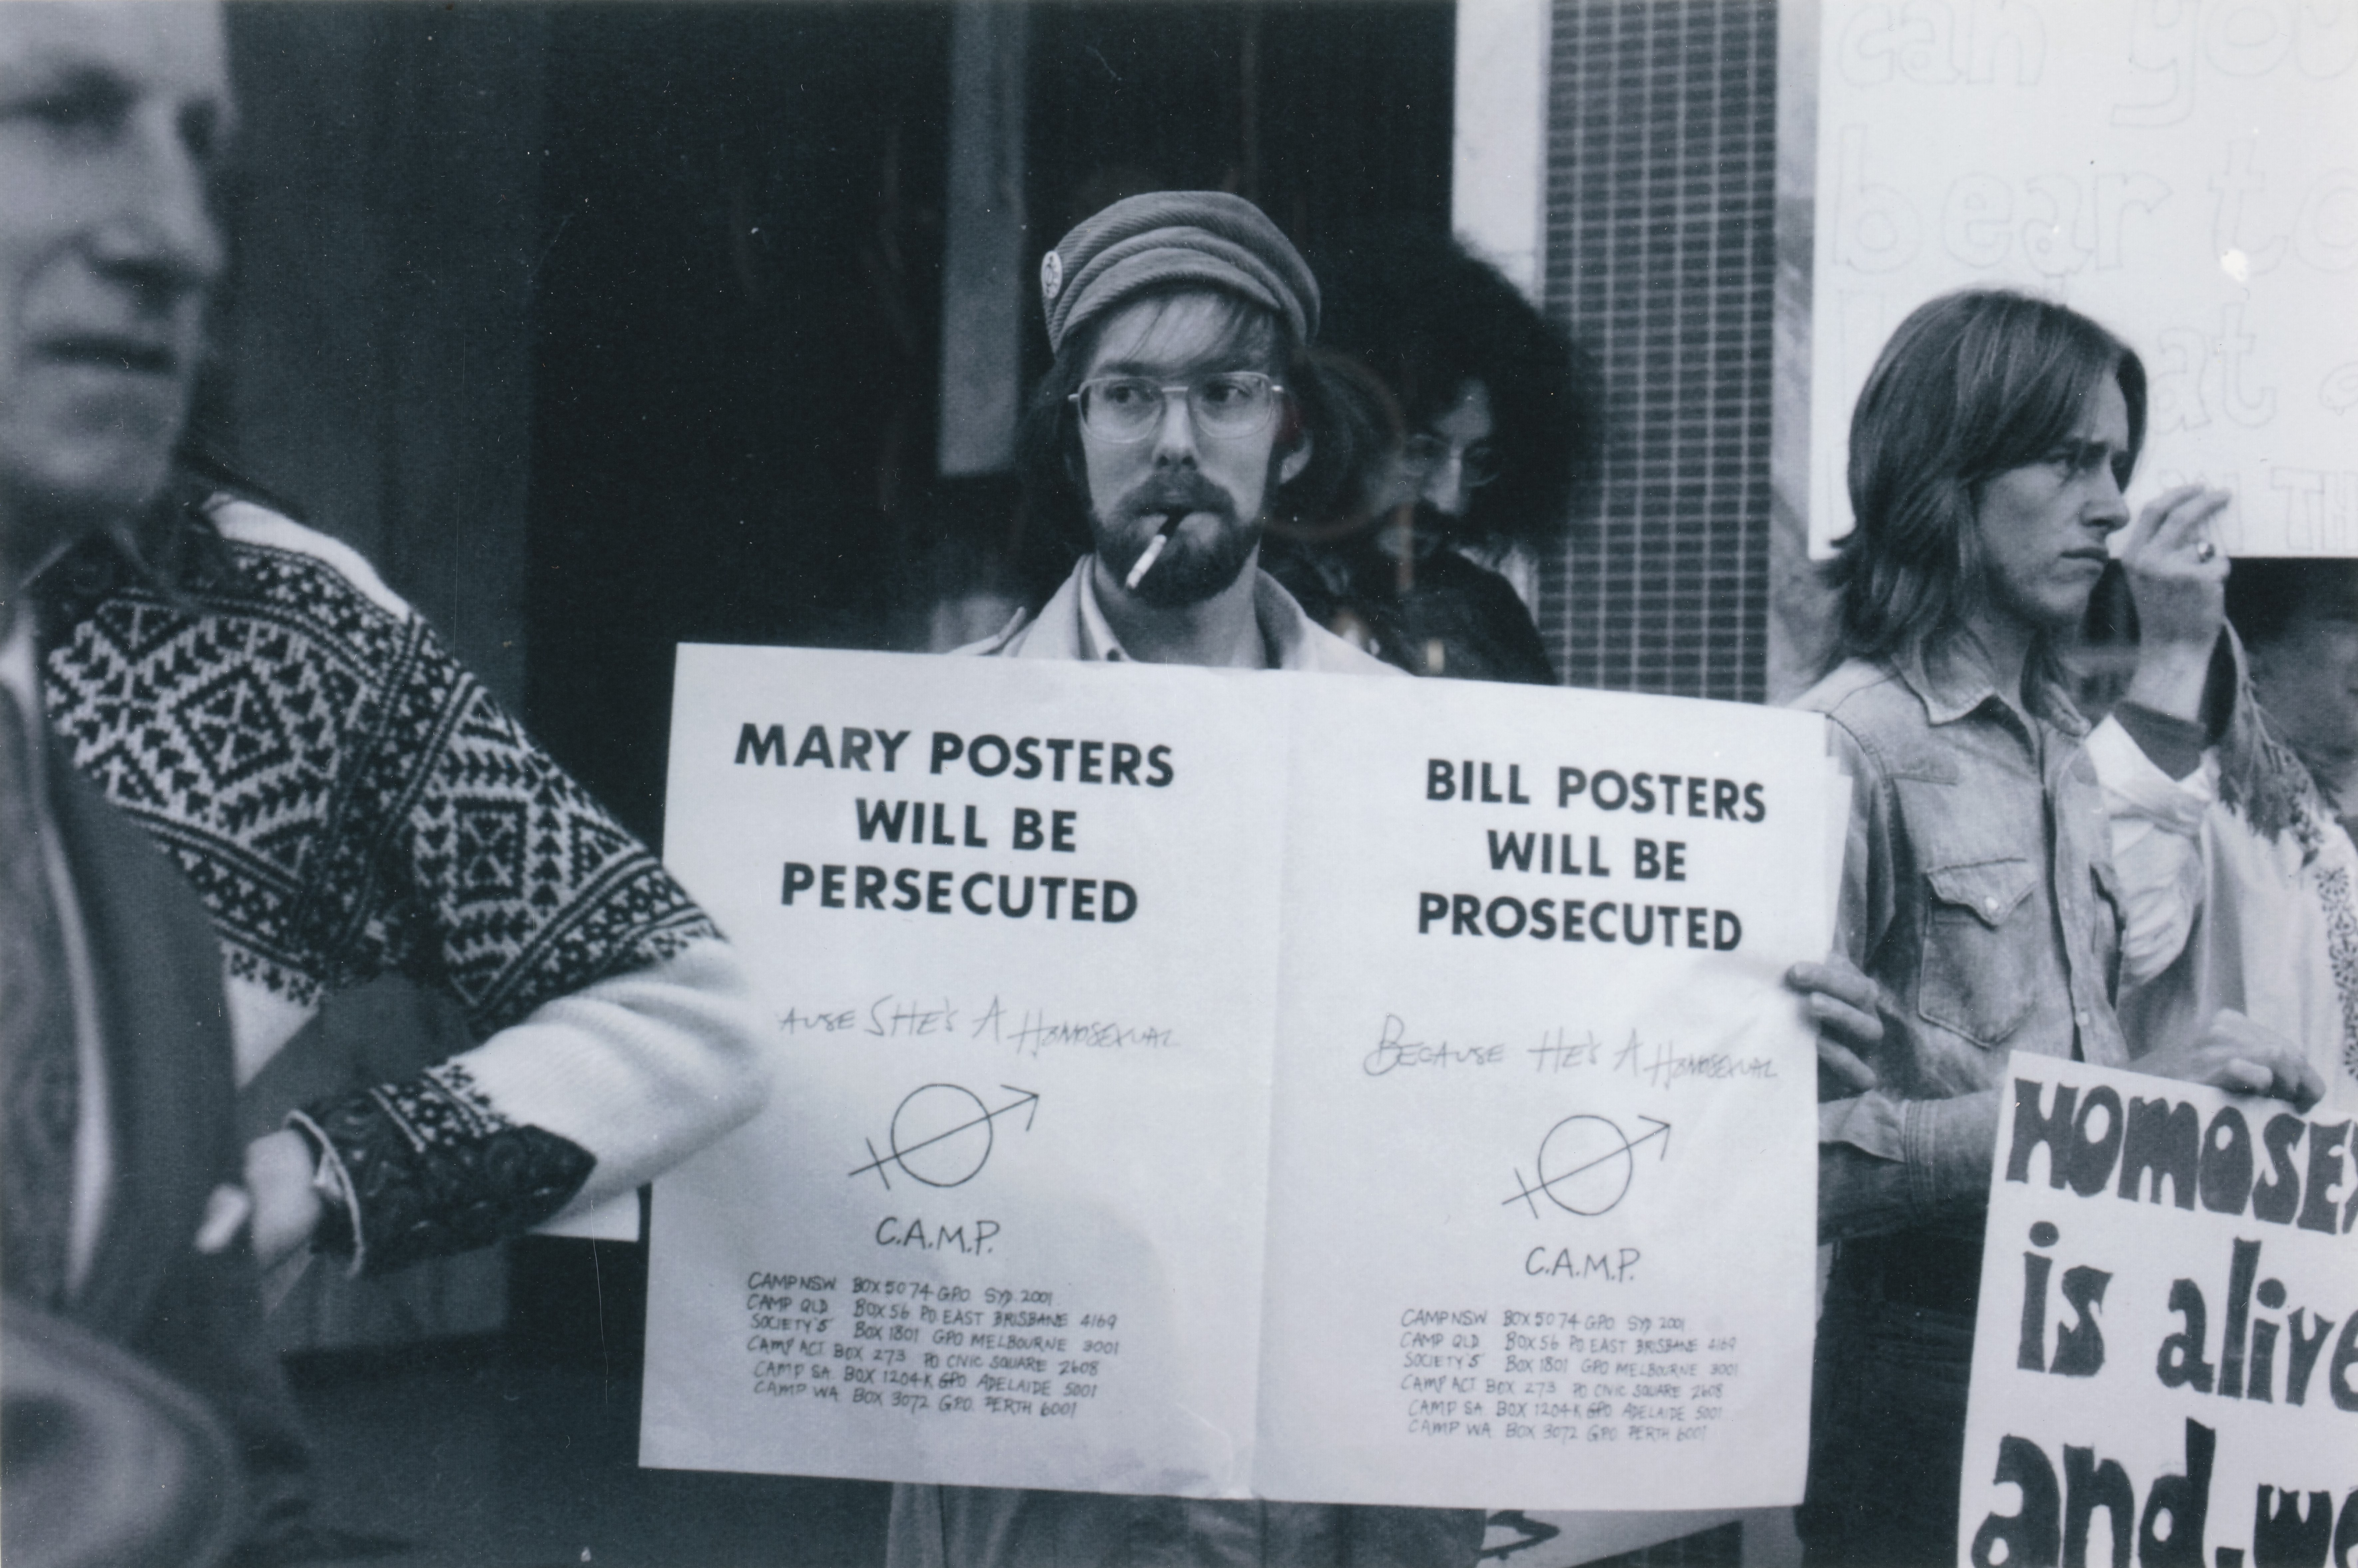 Lex Watson holding double poster: 'Mary Posters will be Persecuted/ Bill Posters will be Prosecuted', CAMP/Sydney Gay Lib demonstrators outside ABC Headquarters, Castlereagh Street, Sydney.